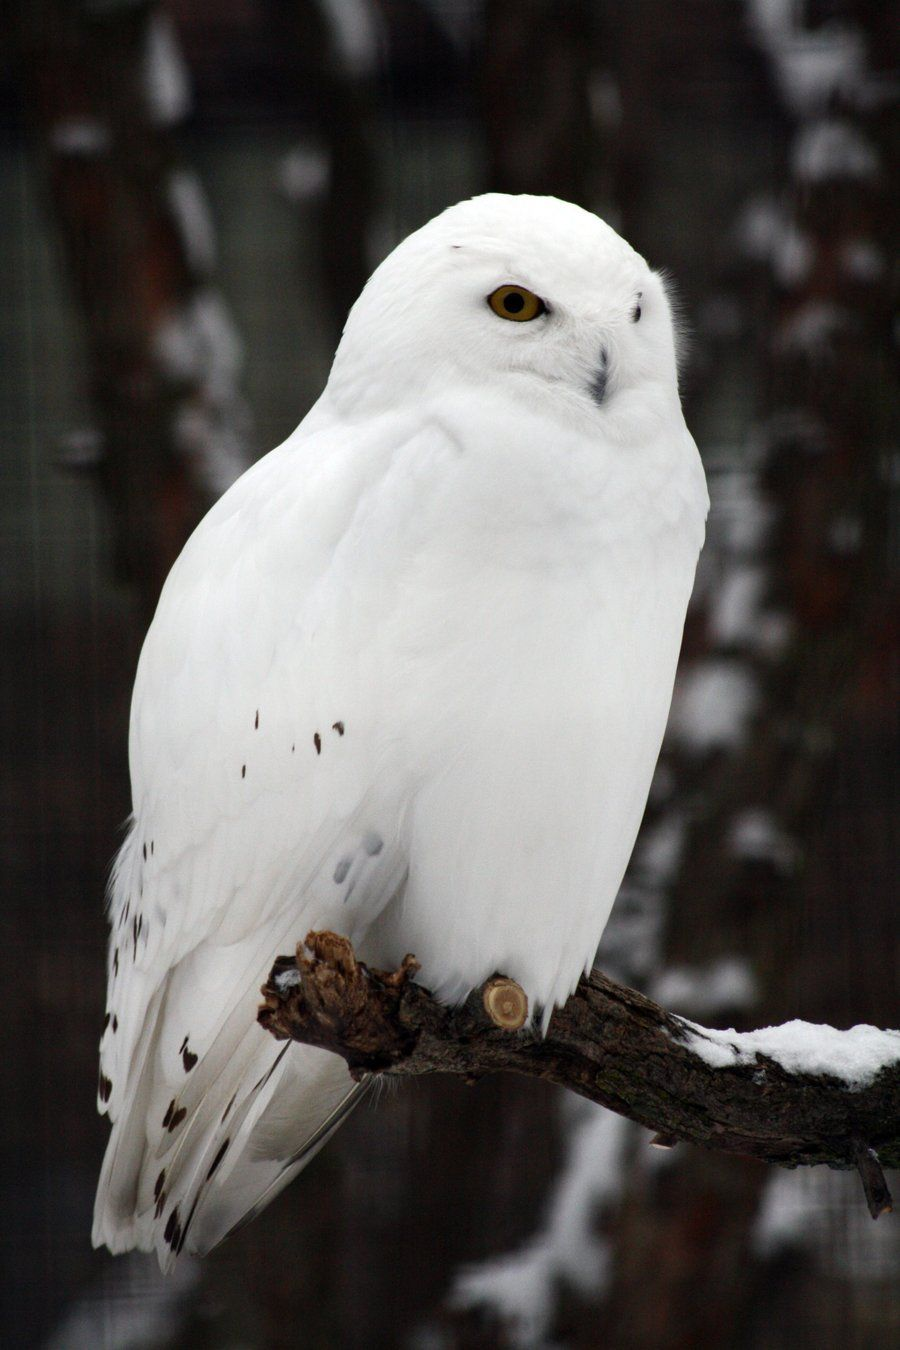 White Owl Iphone Wallpapers Top Free White Owl Iphone